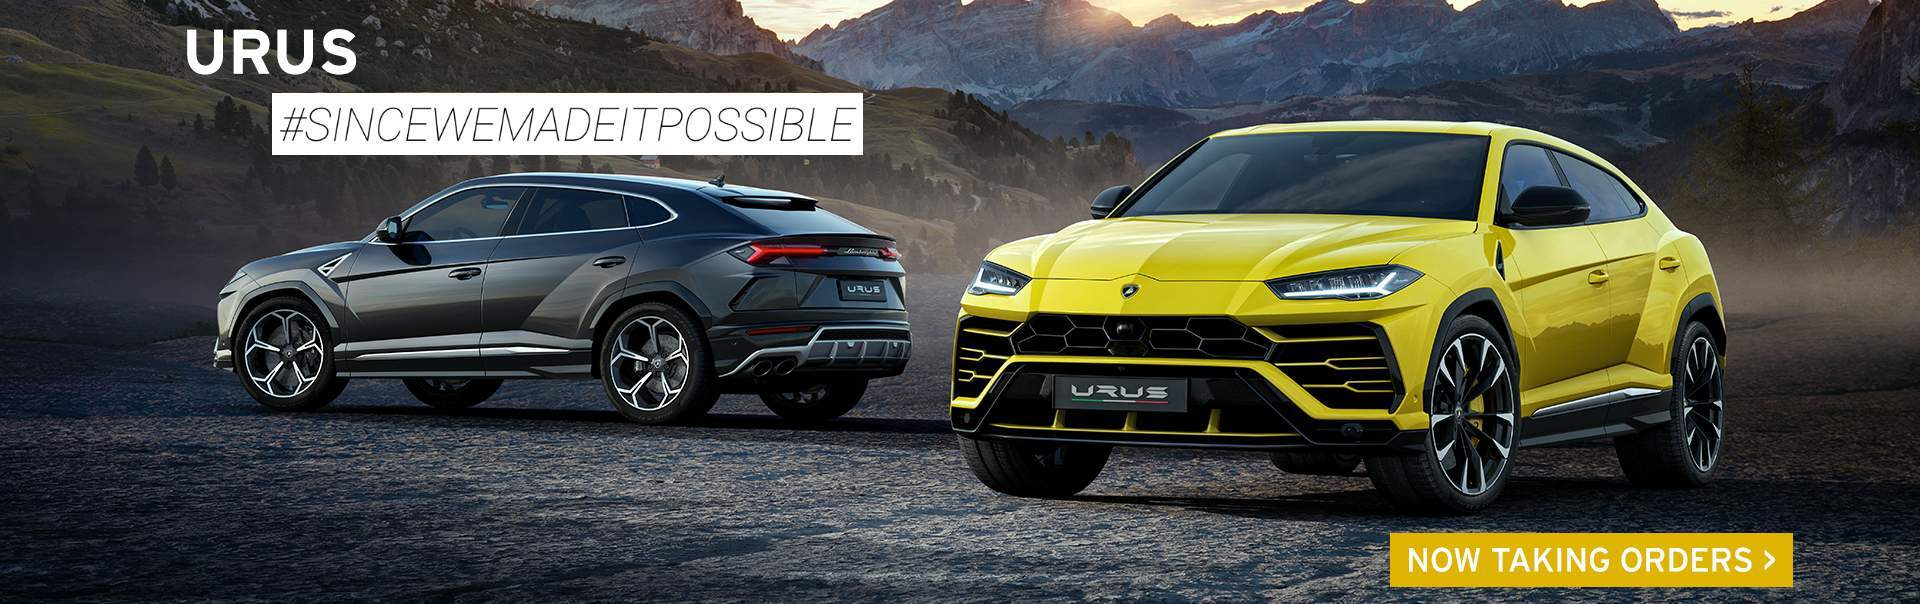 Lamborghini Urus Available